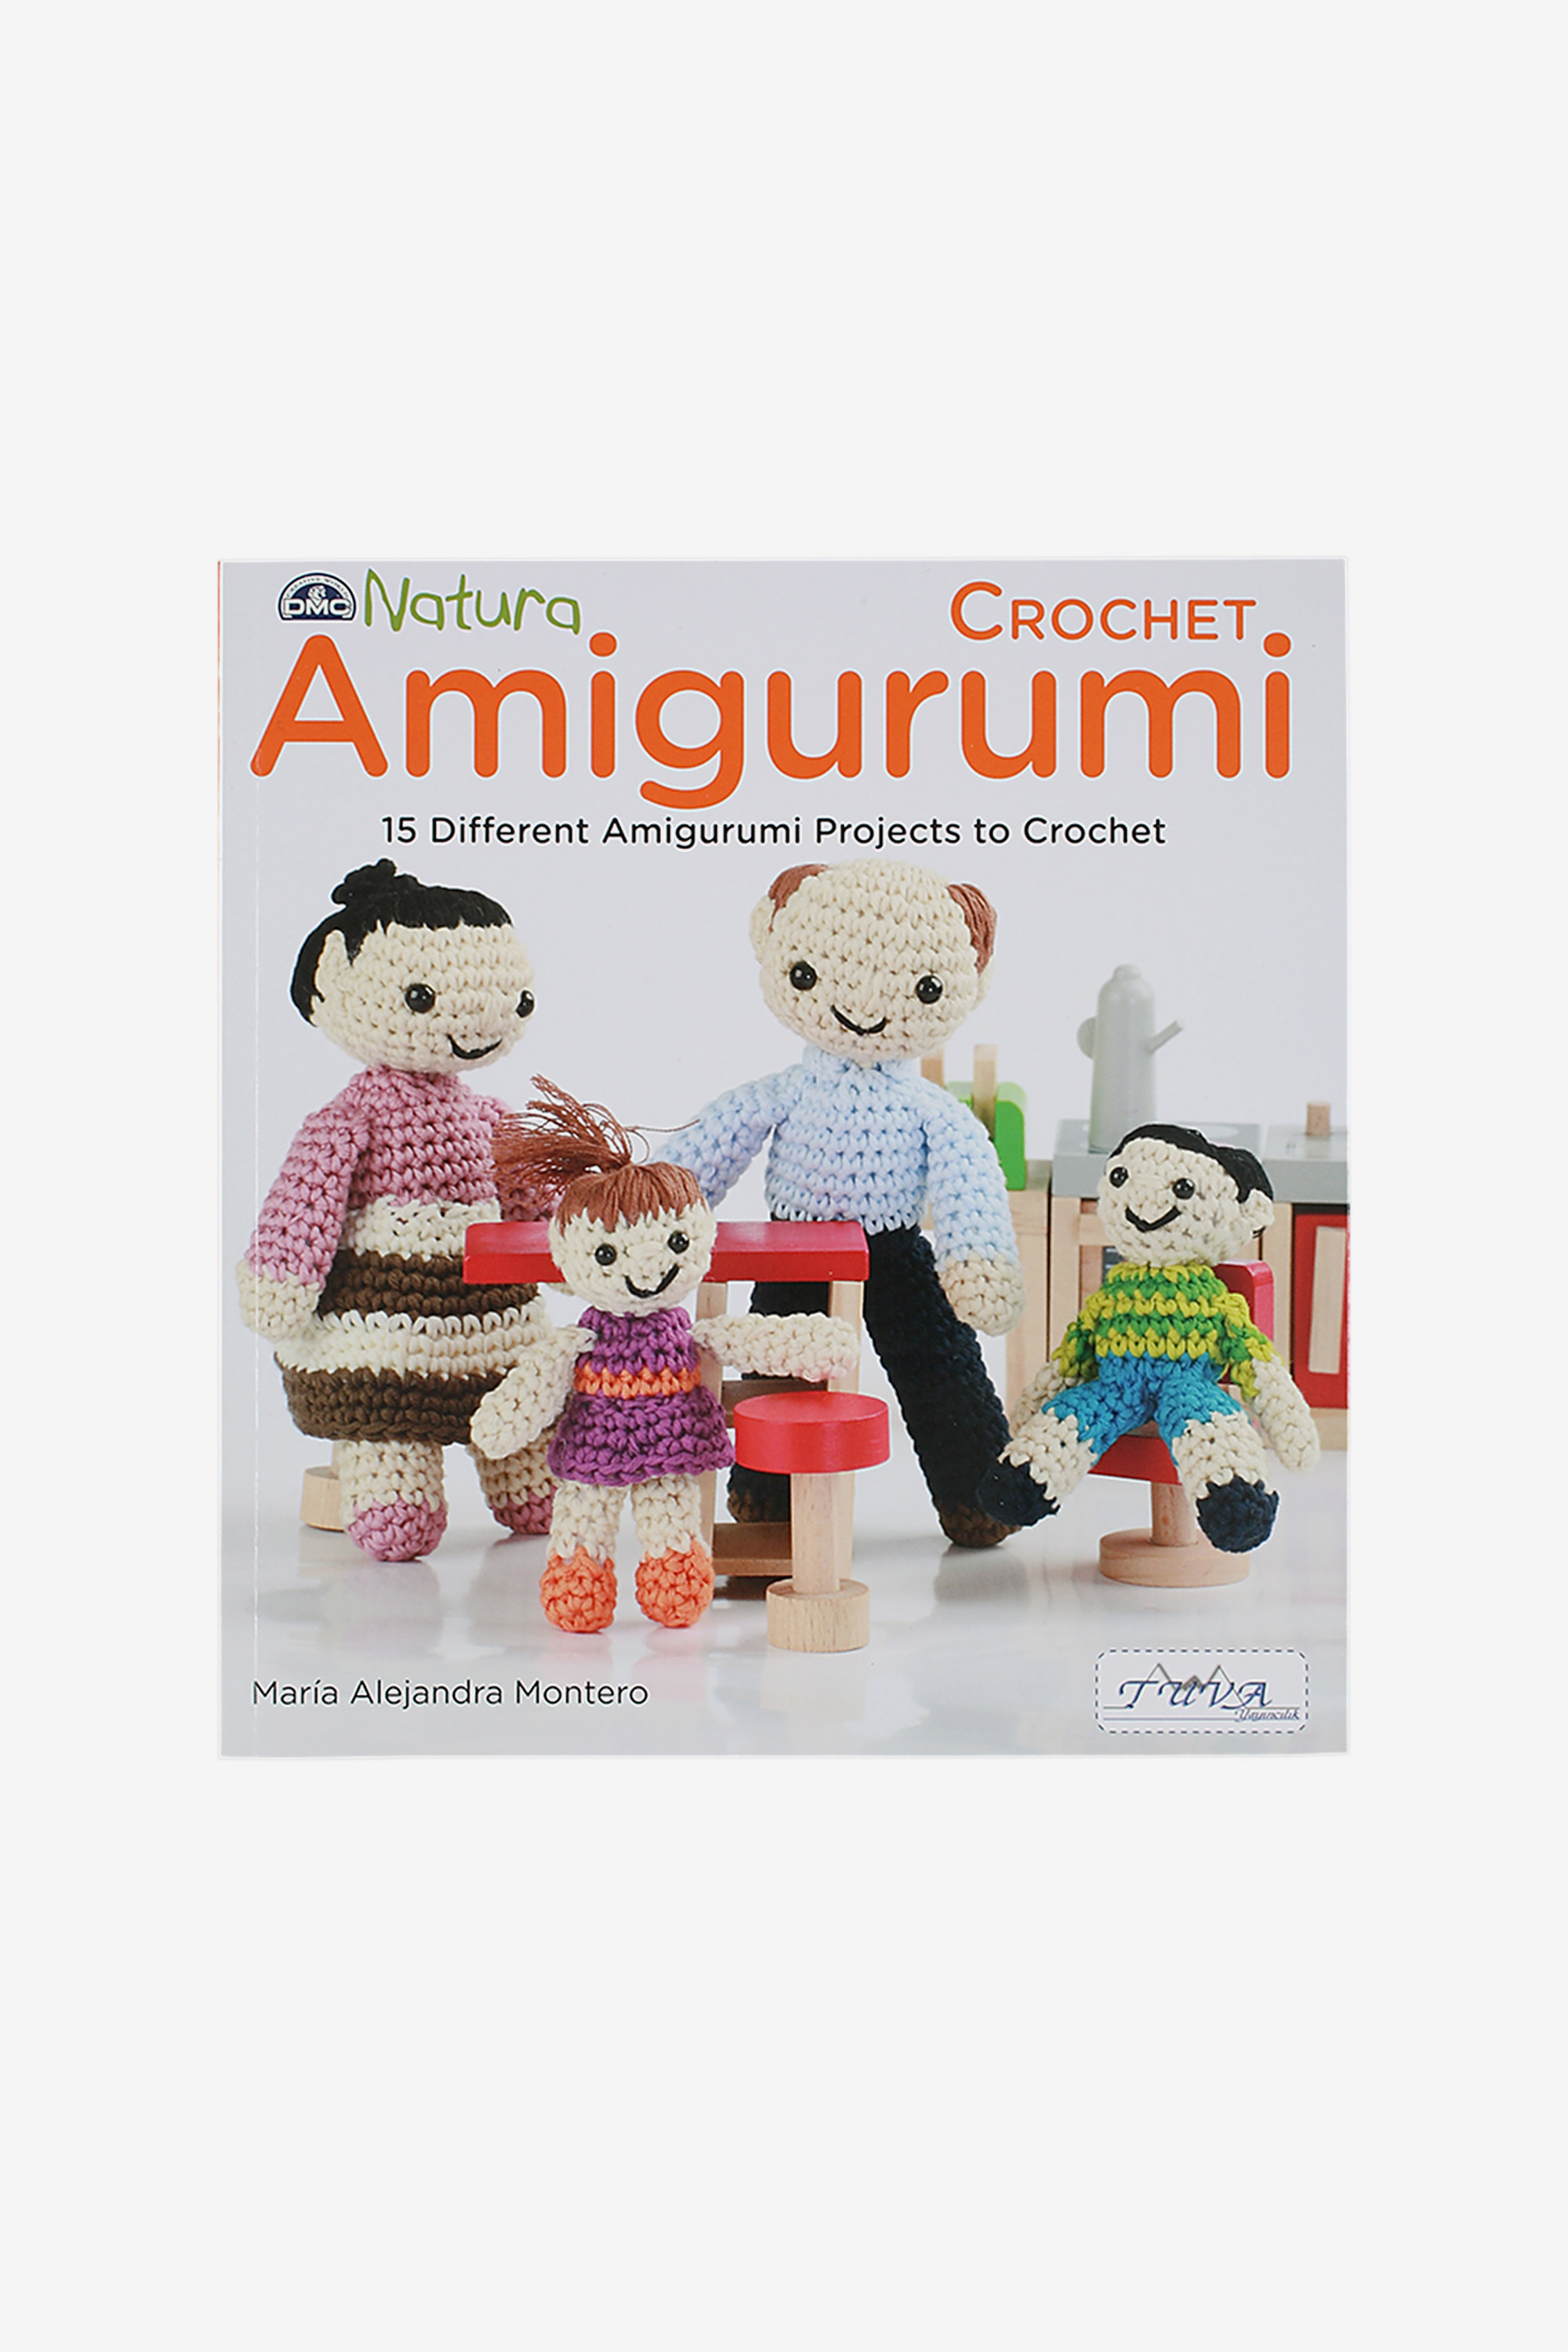 Natura Amigurumi Crochet Pattern Book - Crochet books - DMC